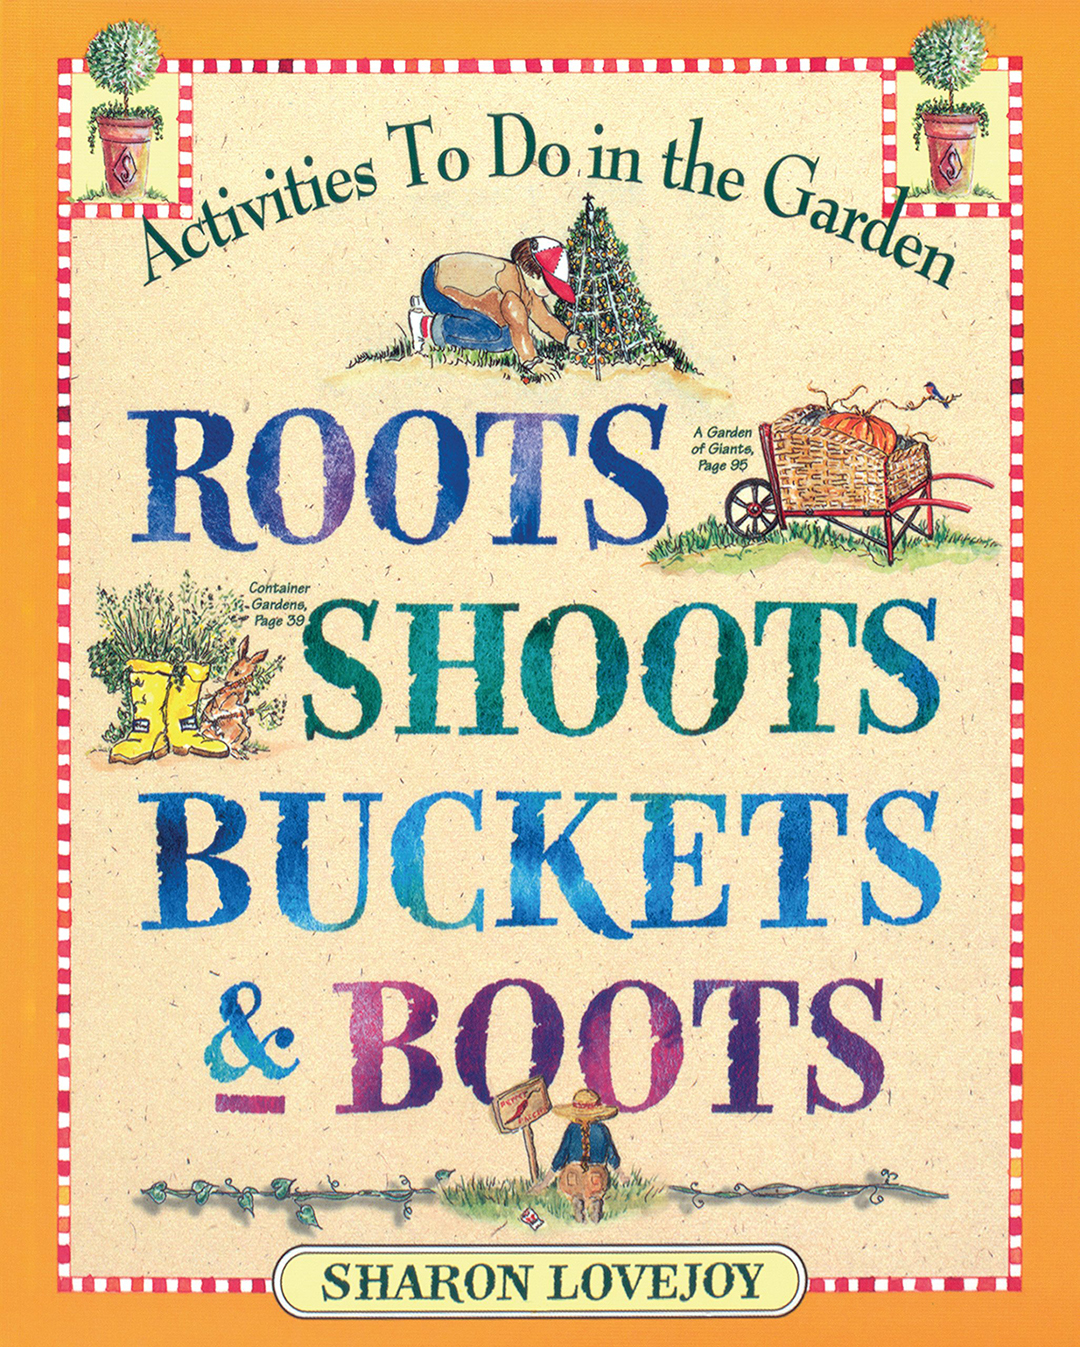 """cover of book called """"Roots, Shoots, Buckets & Boots,"""" has orange border and illustrations of garden supplies"""